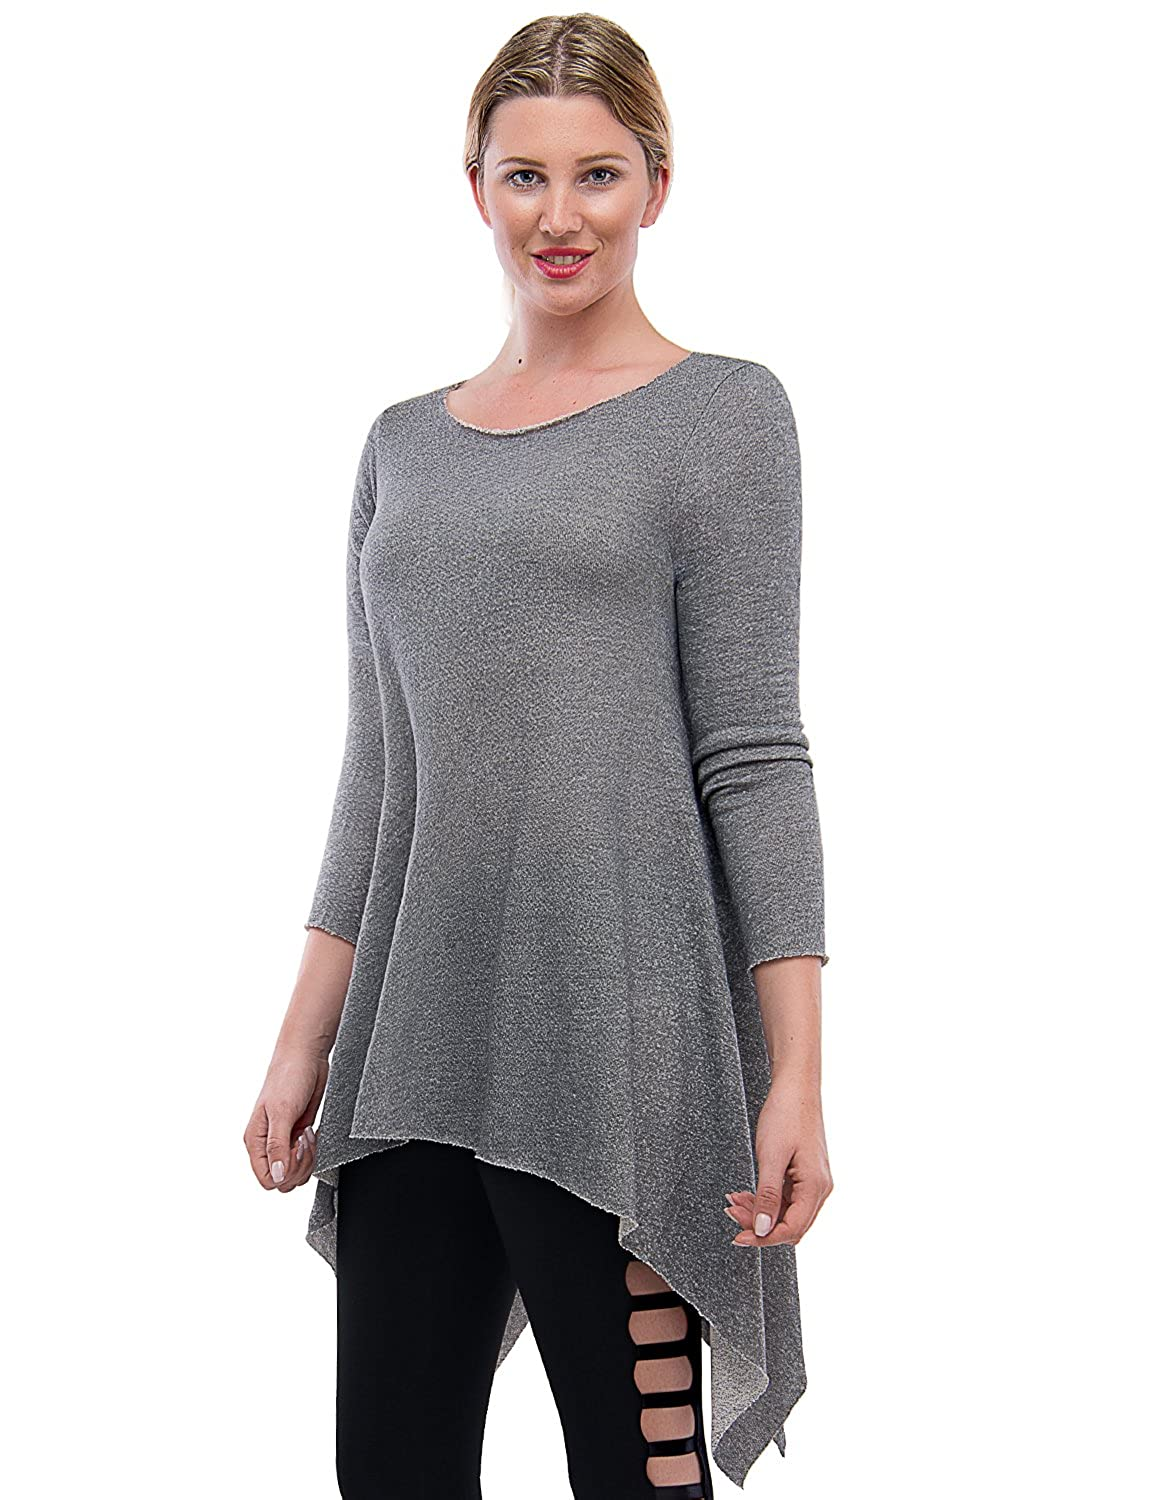 b9c474fb44c TAM WARE Women s Stylish Long Sleeve French Terry Tunic Top (Made in USA) at  Amazon Women s Clothing store